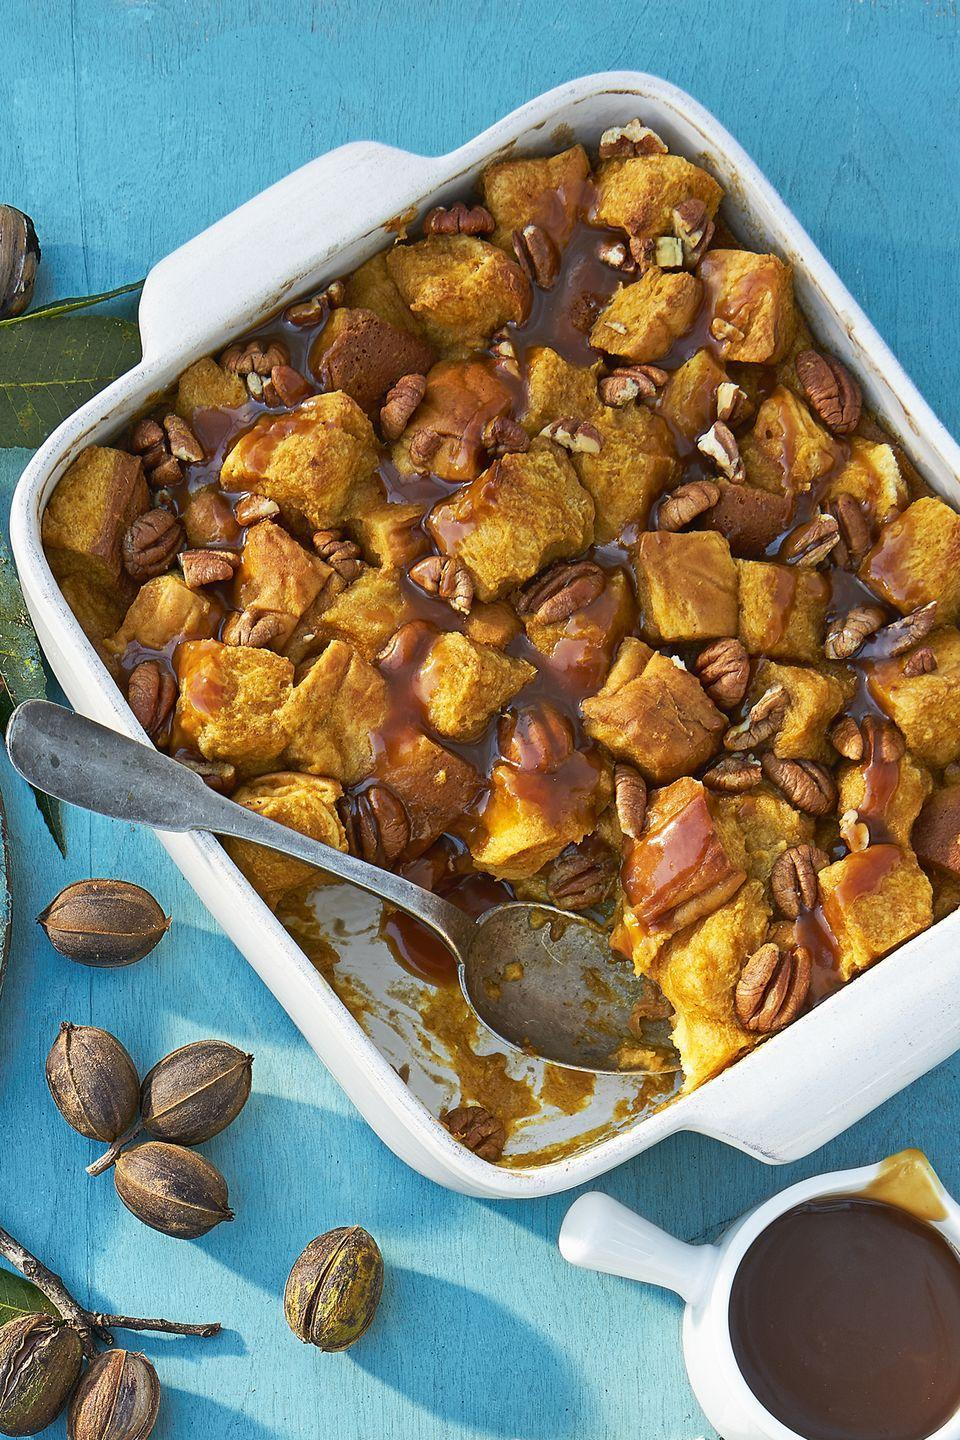 """<p>Bread pudding is already delightful, but the bourbon sauce puts this dish over the top.</p><p><strong><a href=""""https://www.countryliving.com/food-drinks/recipes/a45304/pumpkin-pecan-bread-pudding-recipe/"""" rel=""""nofollow noopener"""" target=""""_blank"""" data-ylk=""""slk:Get the recipe"""" class=""""link rapid-noclick-resp"""">Get the recipe</a>.</strong></p>"""